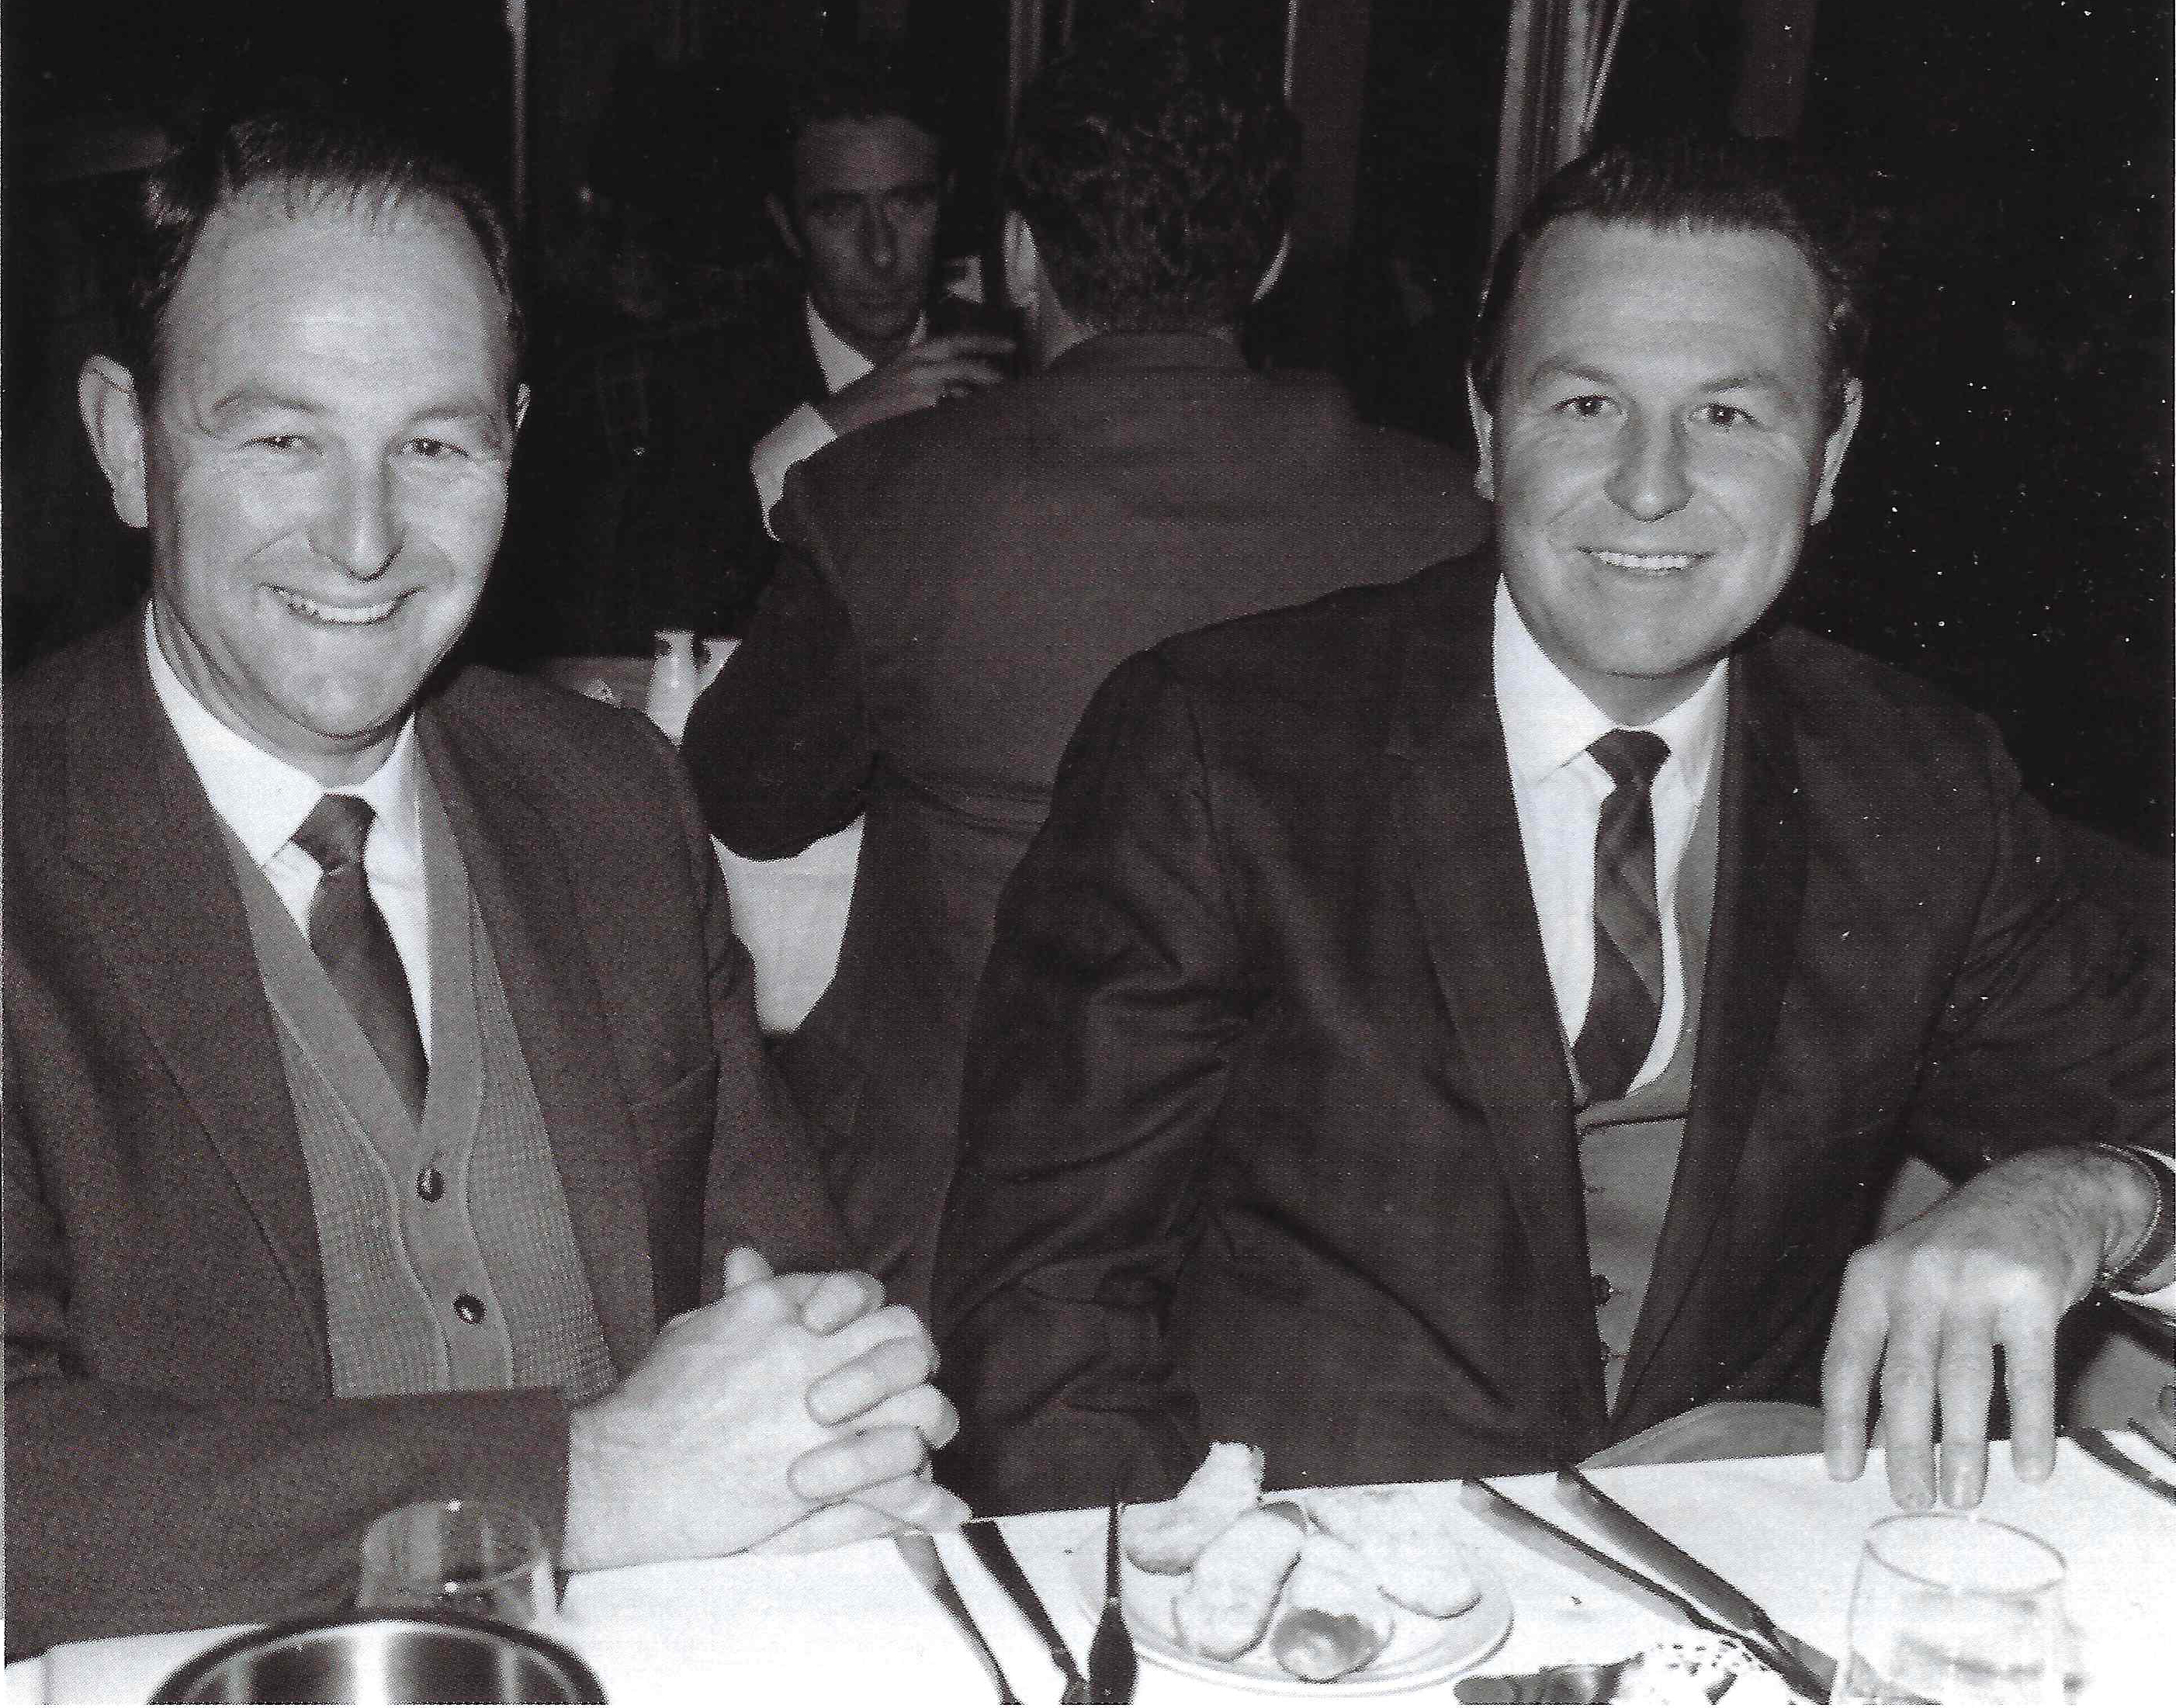 Wally and Hugh Morris, pictured in the 1960s - the men who brought McDonald's to New Zealand (photo from 'Golden Arches Under Southern Skies' 2011